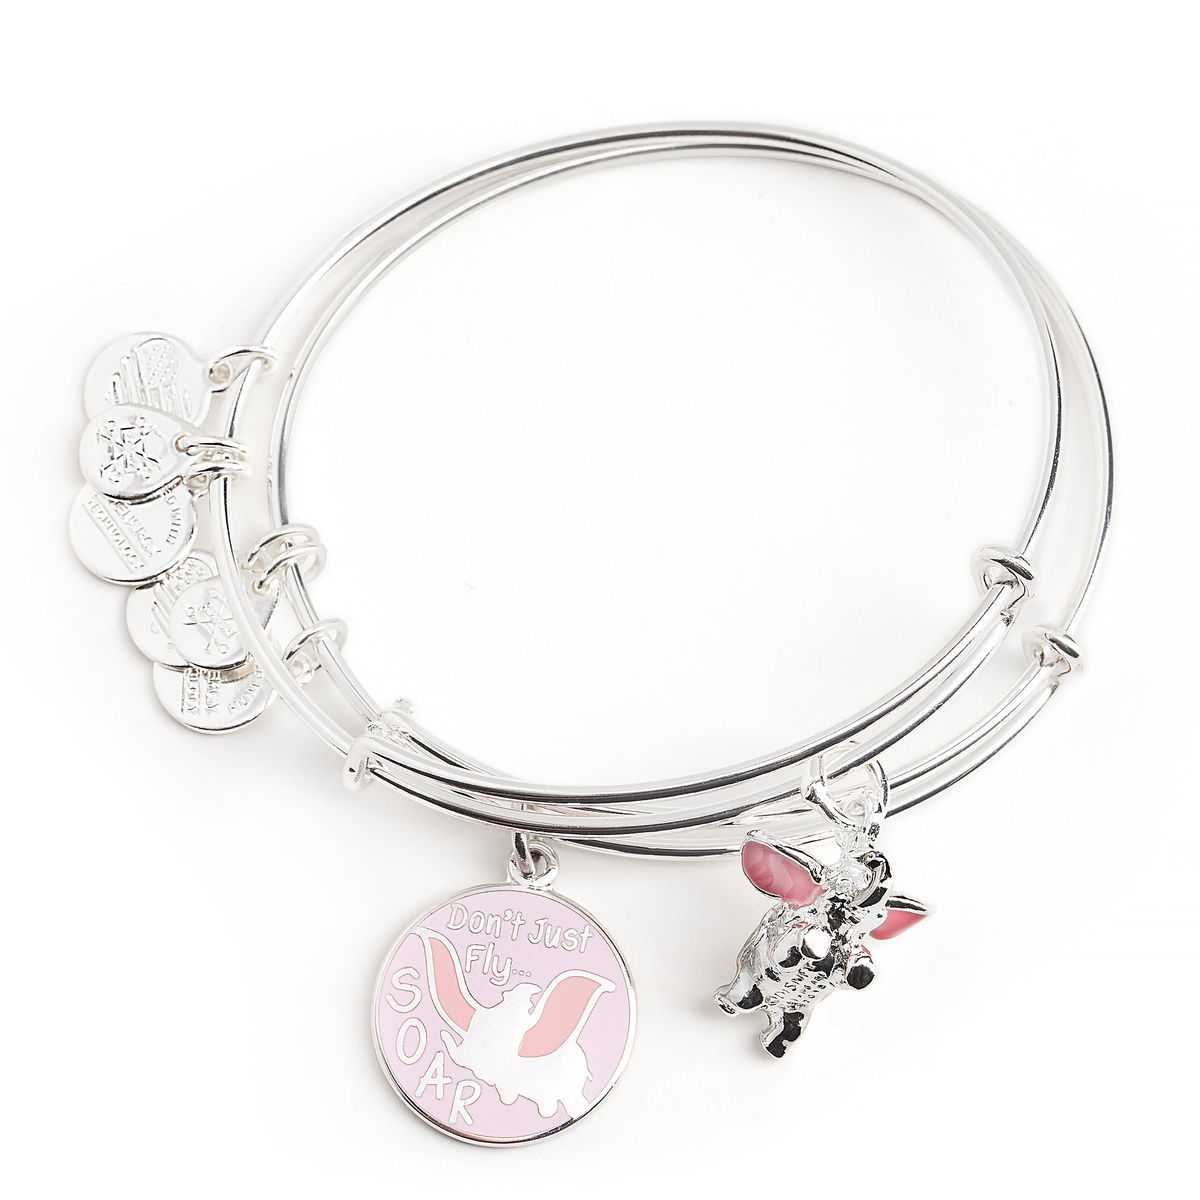 Product Image Of Dumbo Bangle Set By Alex And Ani 1